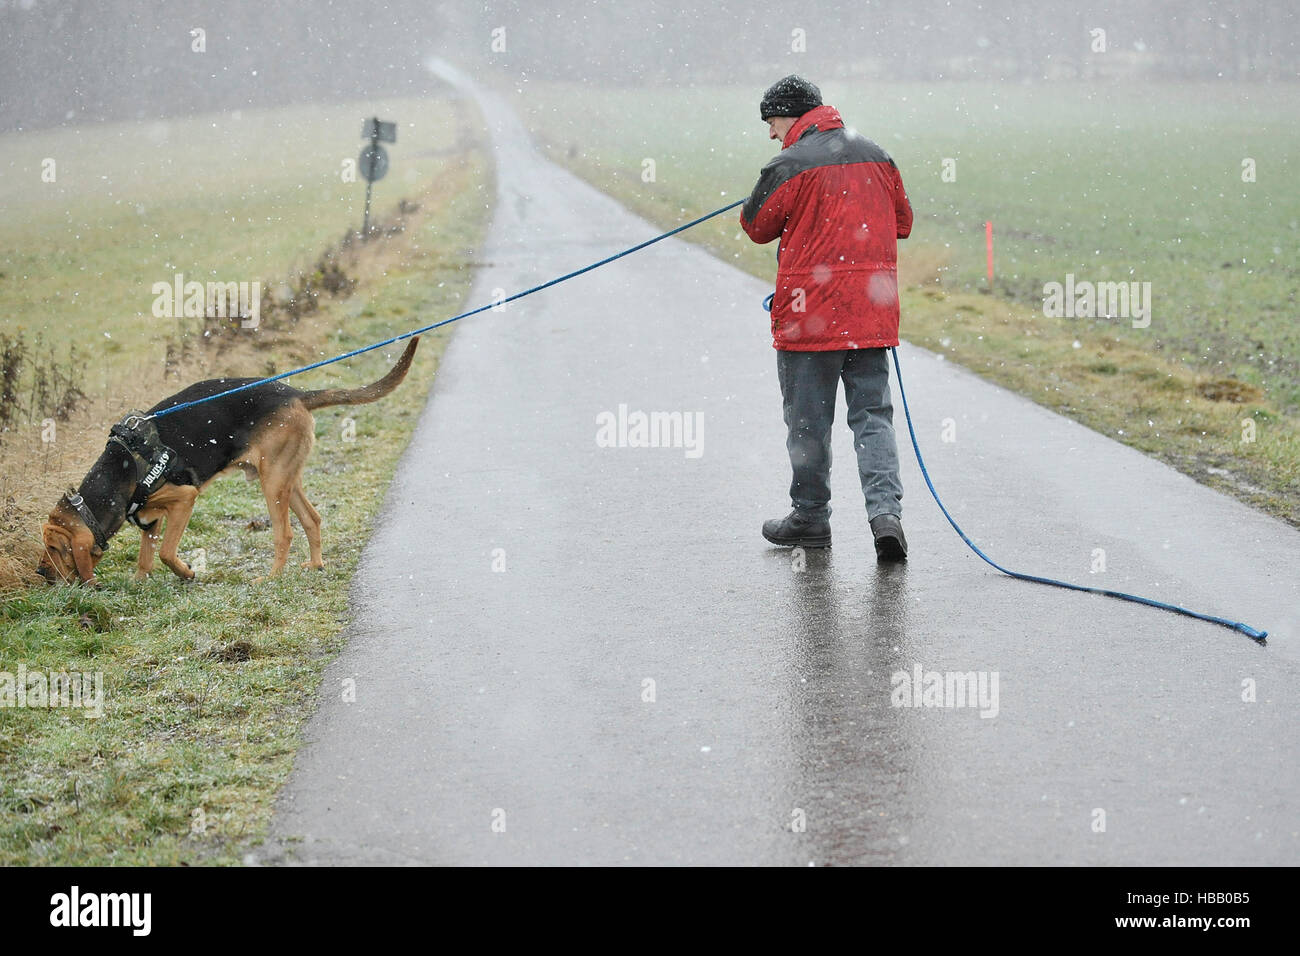 german policeman training bloodhound in blizzard conditions, germany 2011 - Stock Image